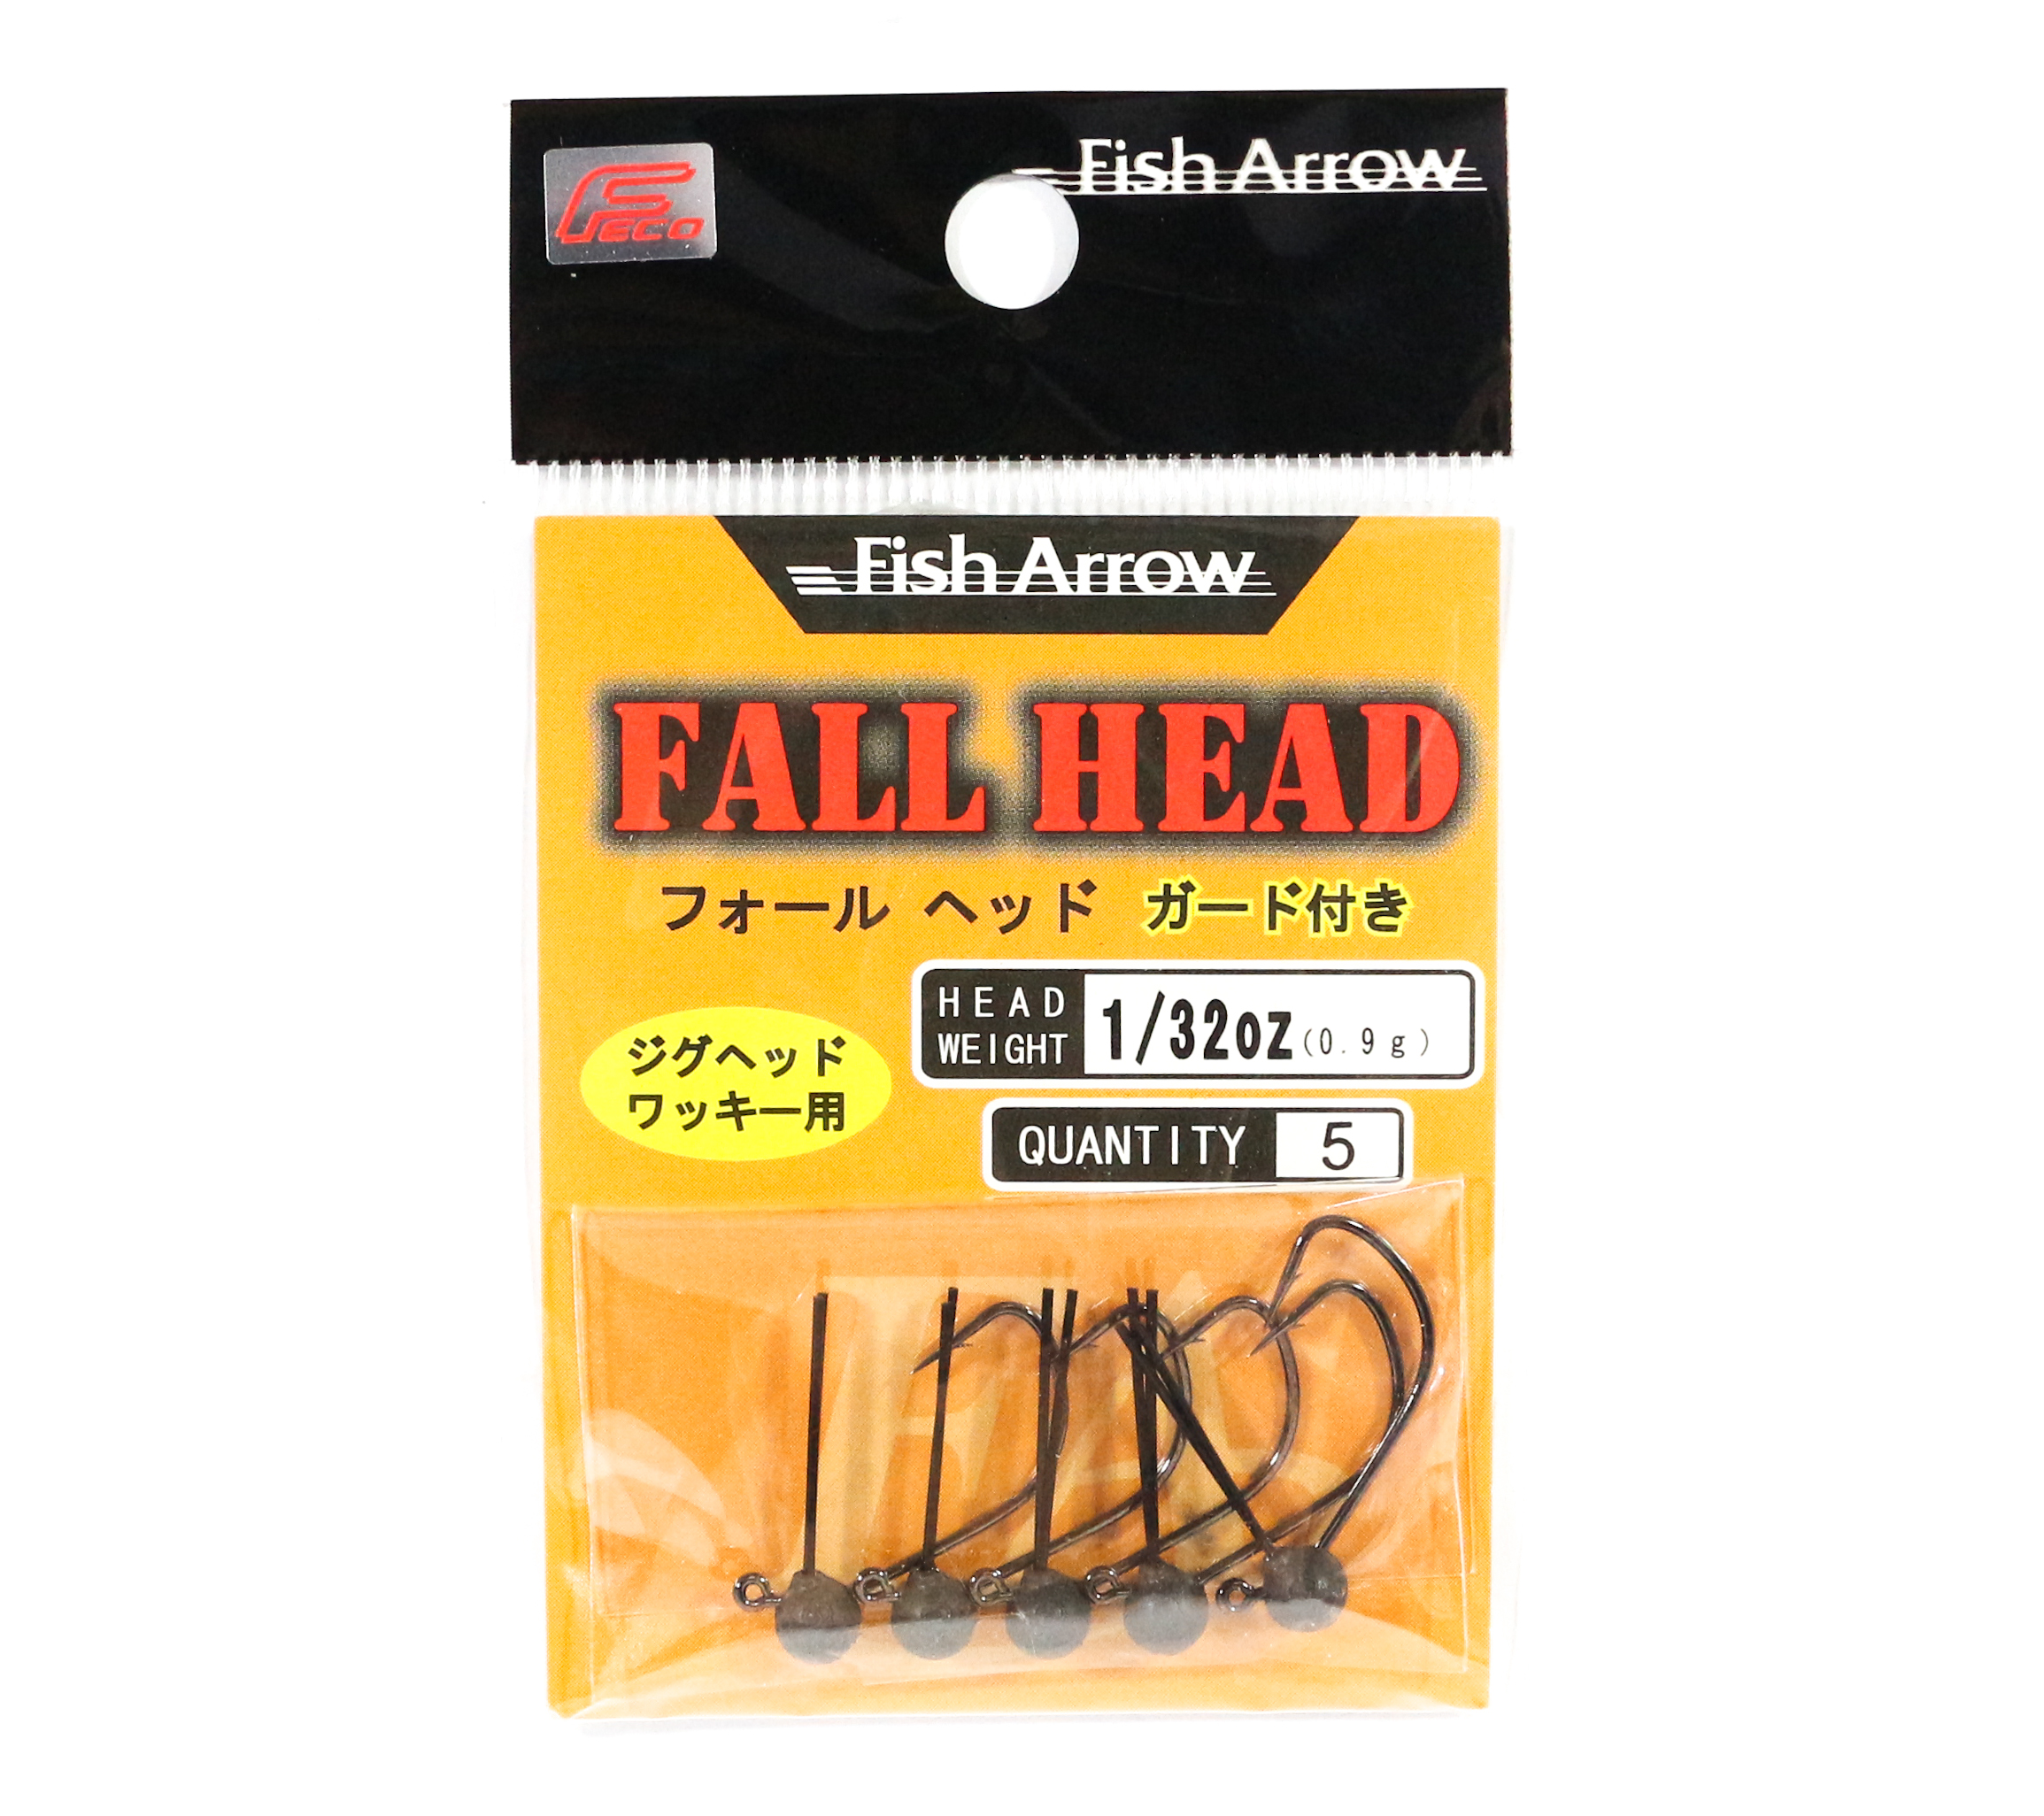 Fish Arrow Jig Head Fall Head with Guard 0.9 grams Size 5 5 Pc per pack (2038)